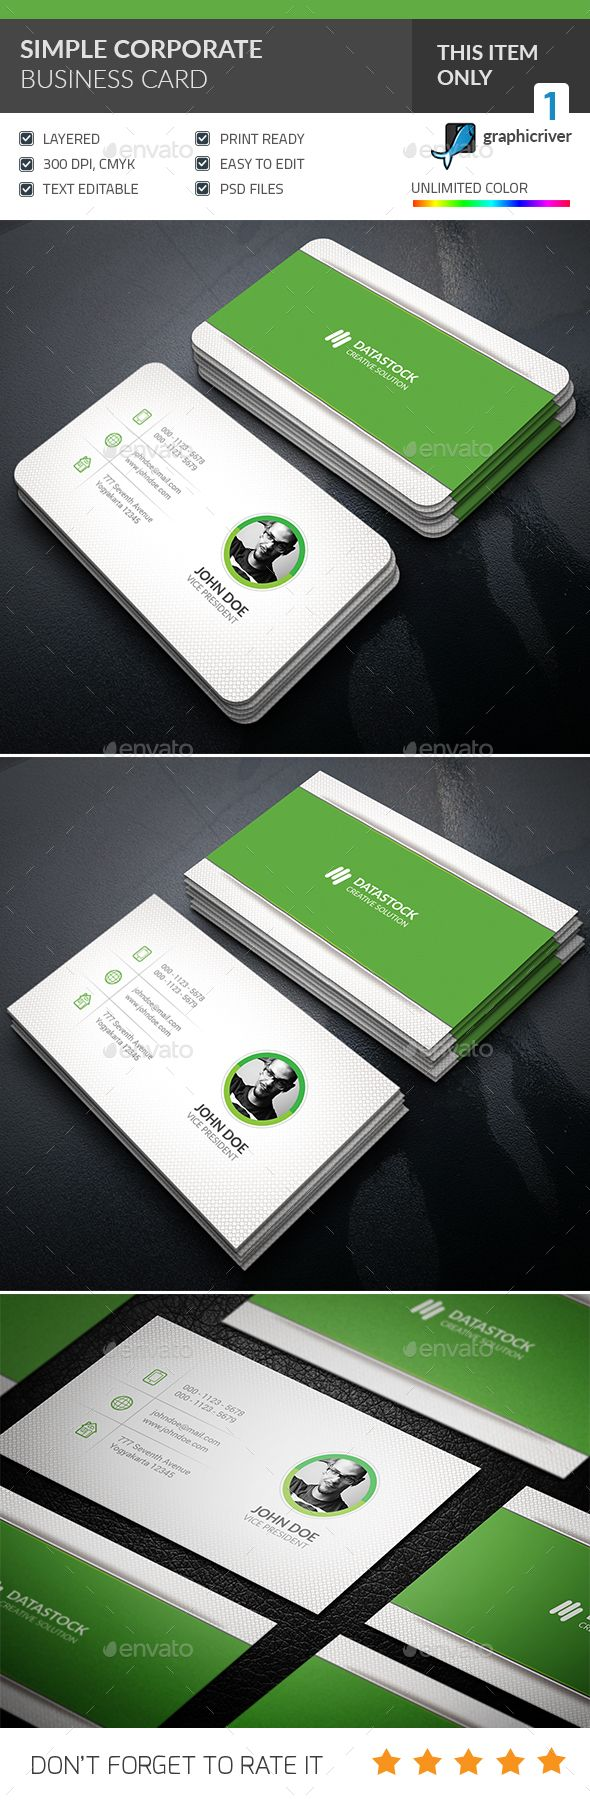 Simple Corporate Business Card Template PSD. Download here: http://graphicriver.net/item/simple-corporate-business-card-/16597910?ref=ksioks